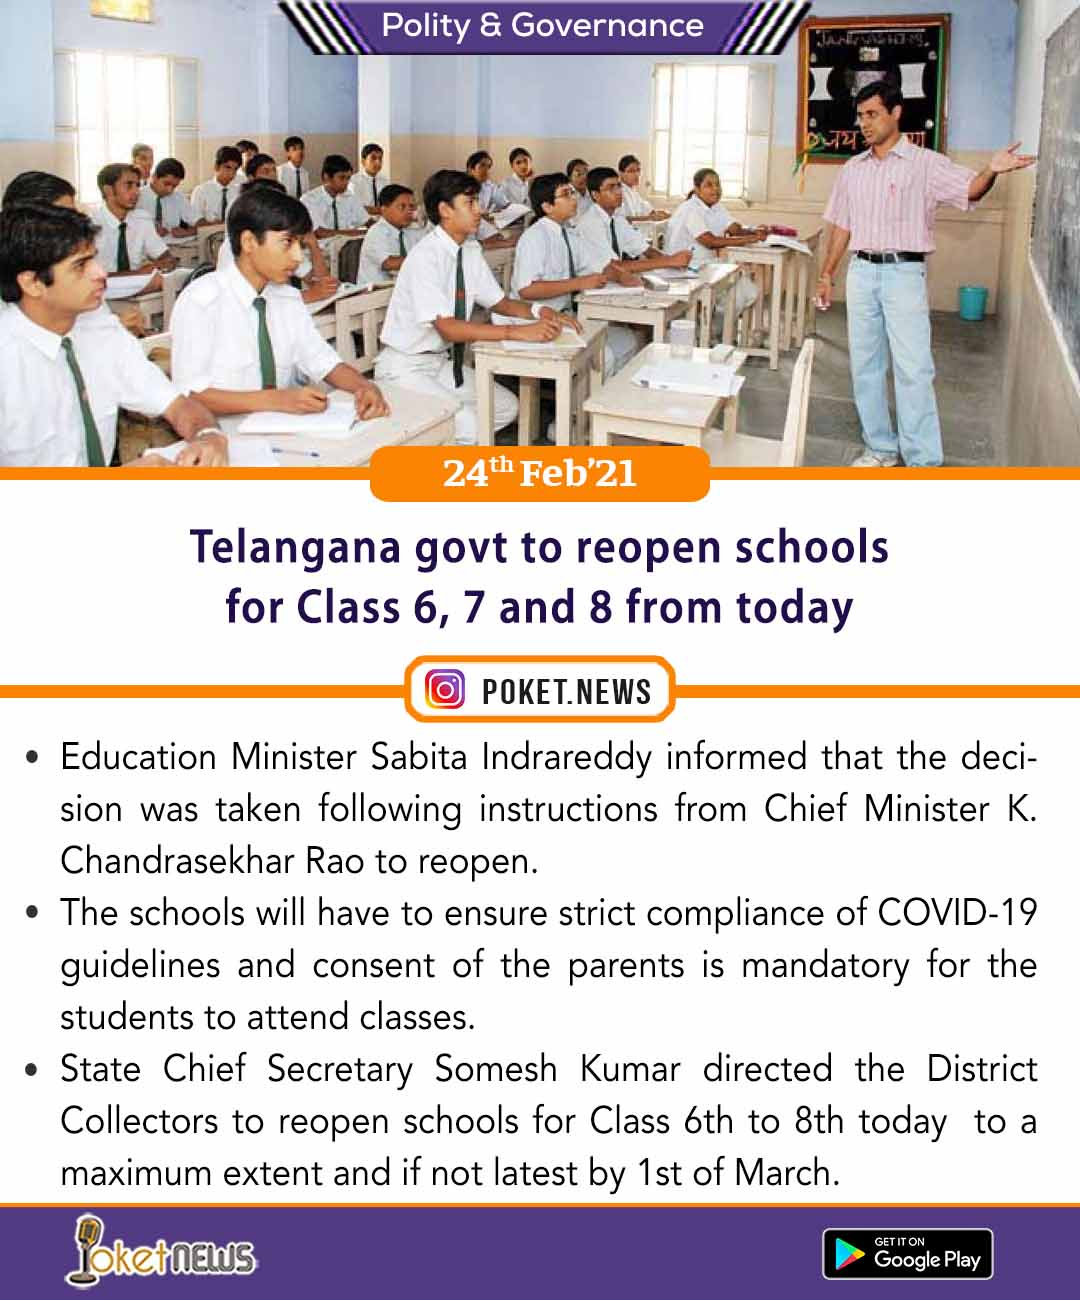 Telangana govt to reopen schools for Class 6, 7 and 8 from today